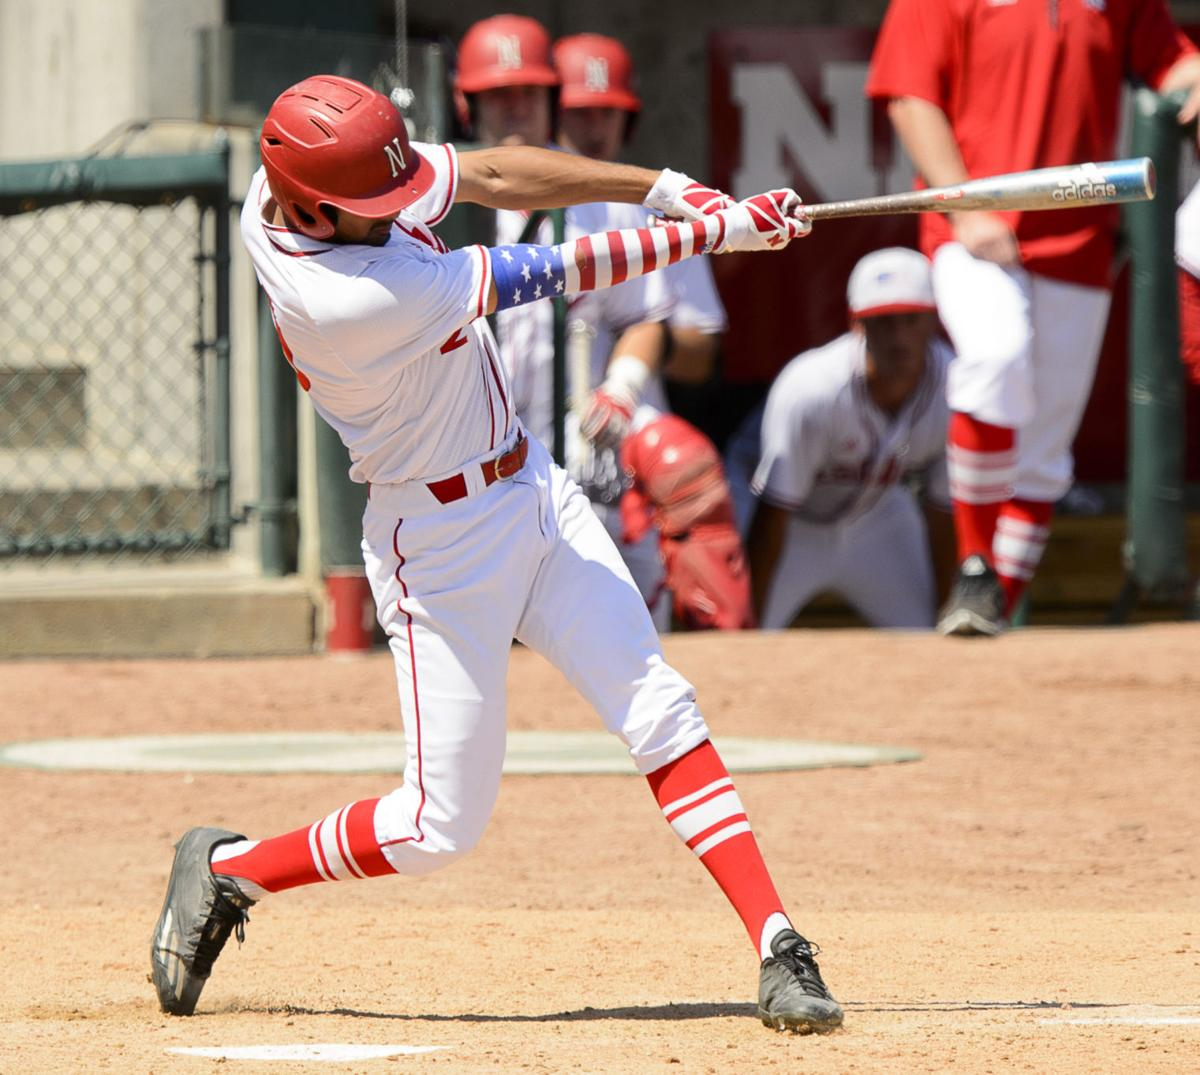 Walk-off Win Caps Sweep And Vaults Huskers Into First